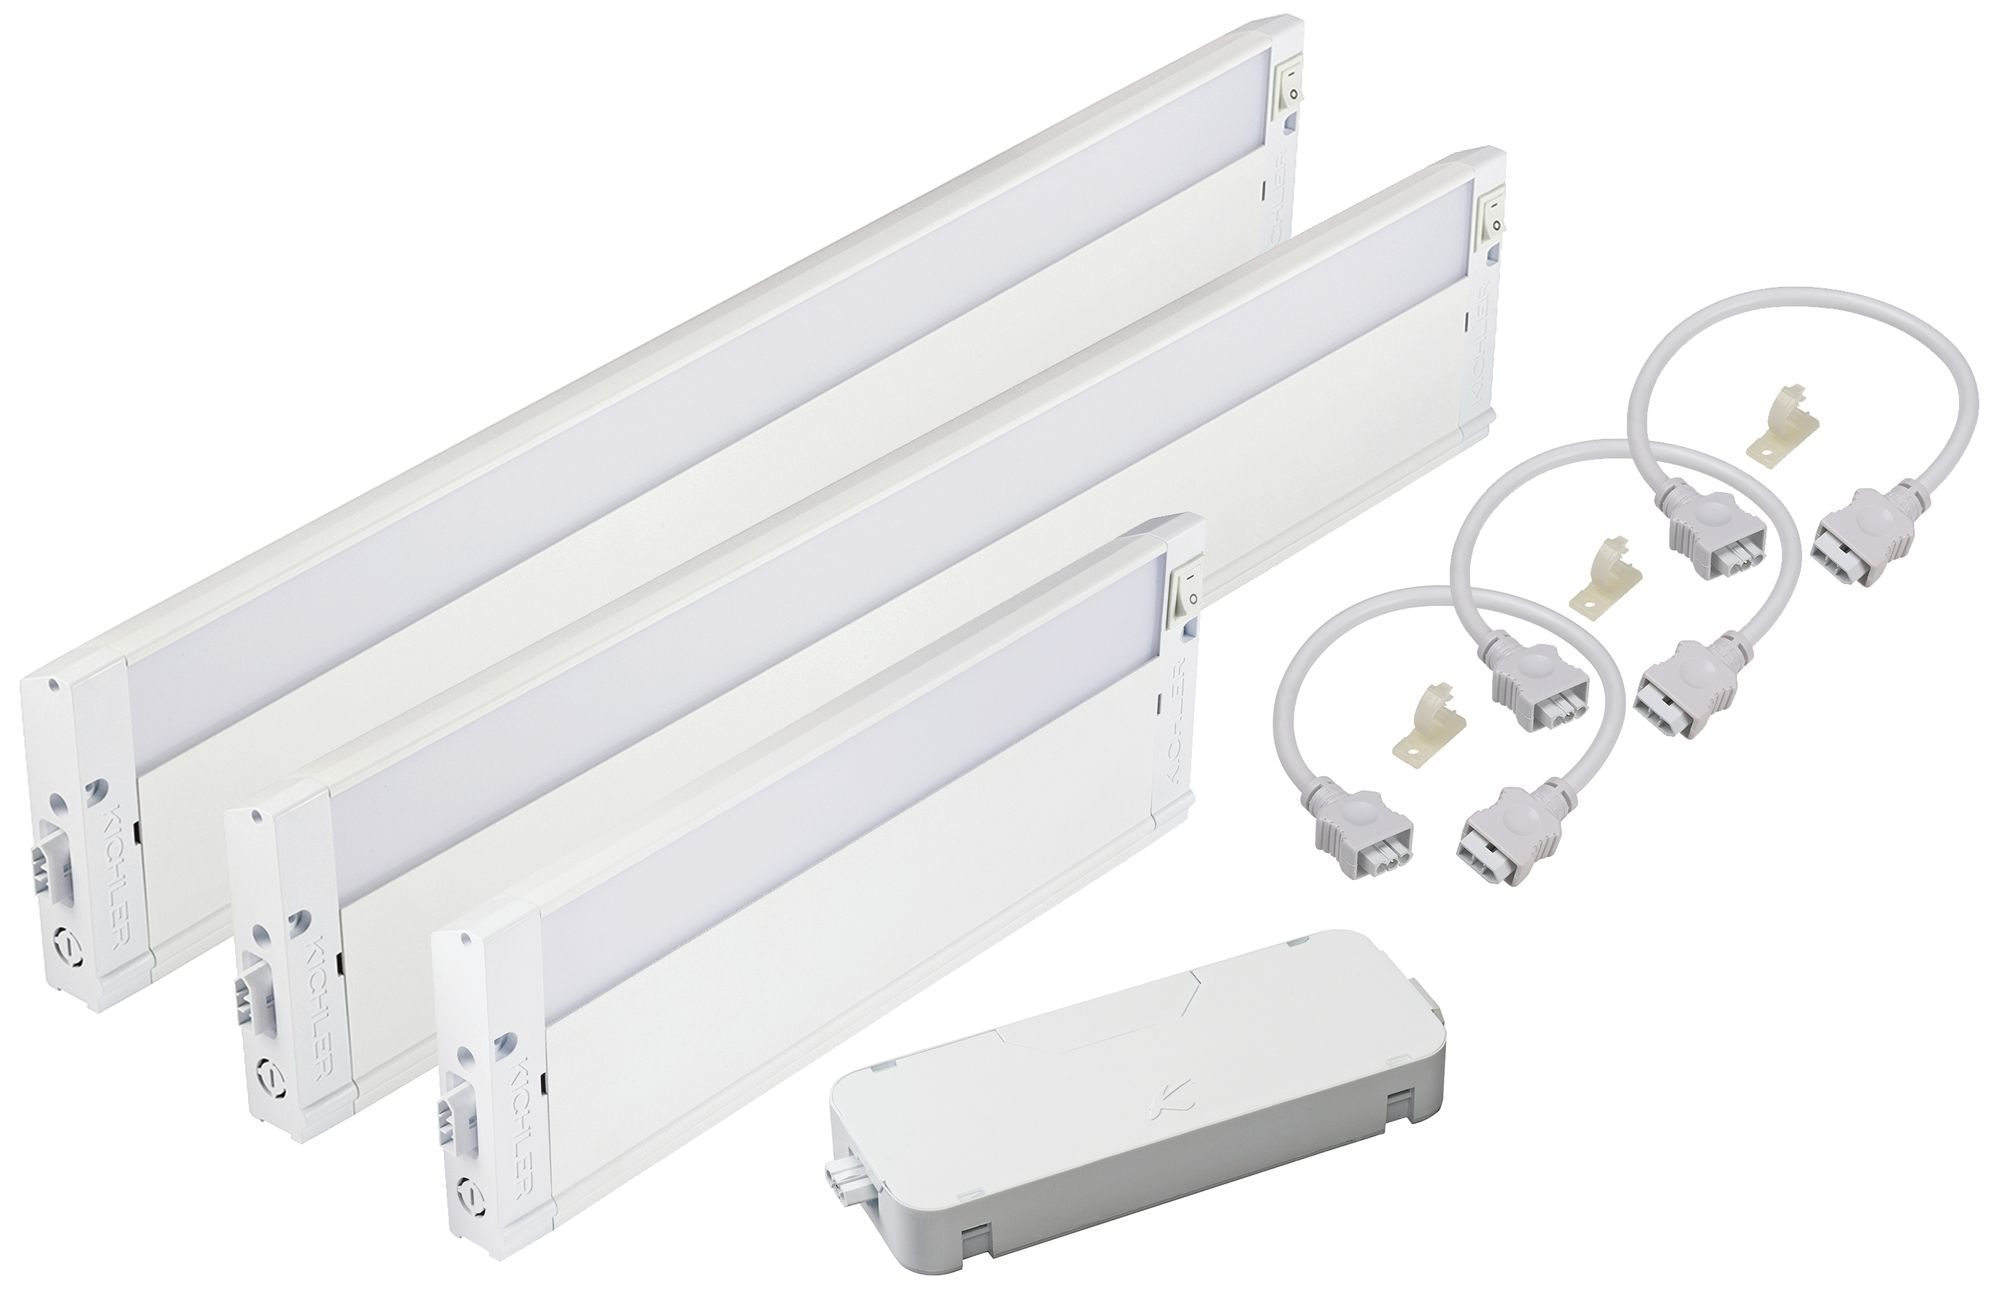 Kichler Under Cabinet Kit With Three LED Lights And Cable